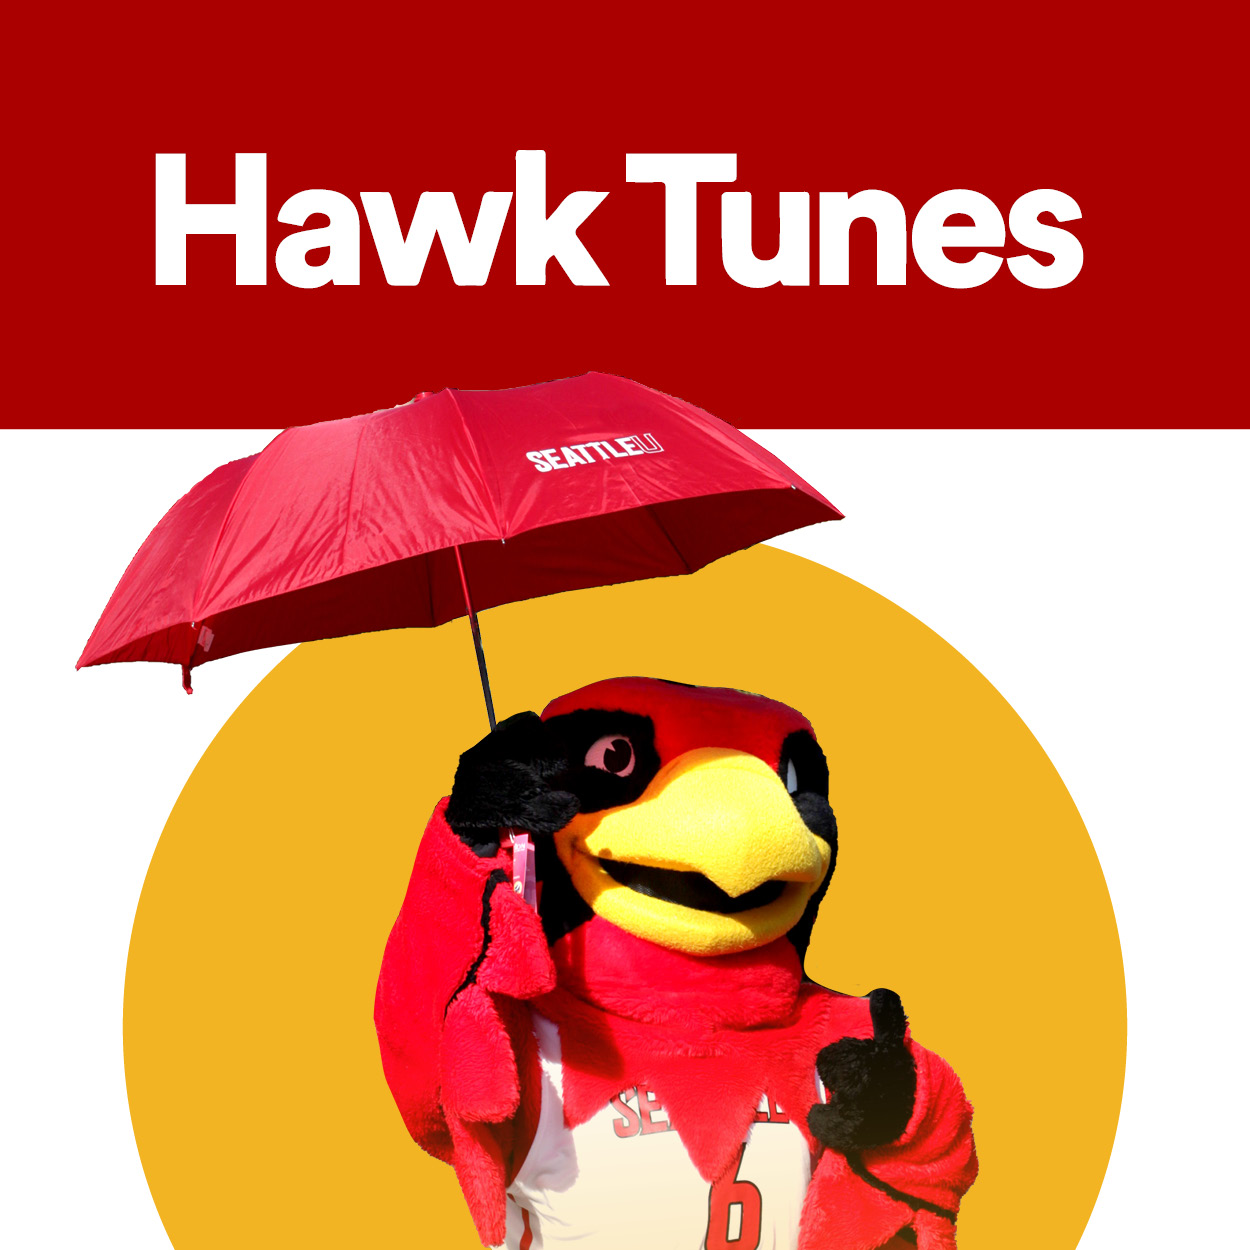 An image that says Hawk Tunes with Rudy the Redhawk holding a Homecoming umbrella